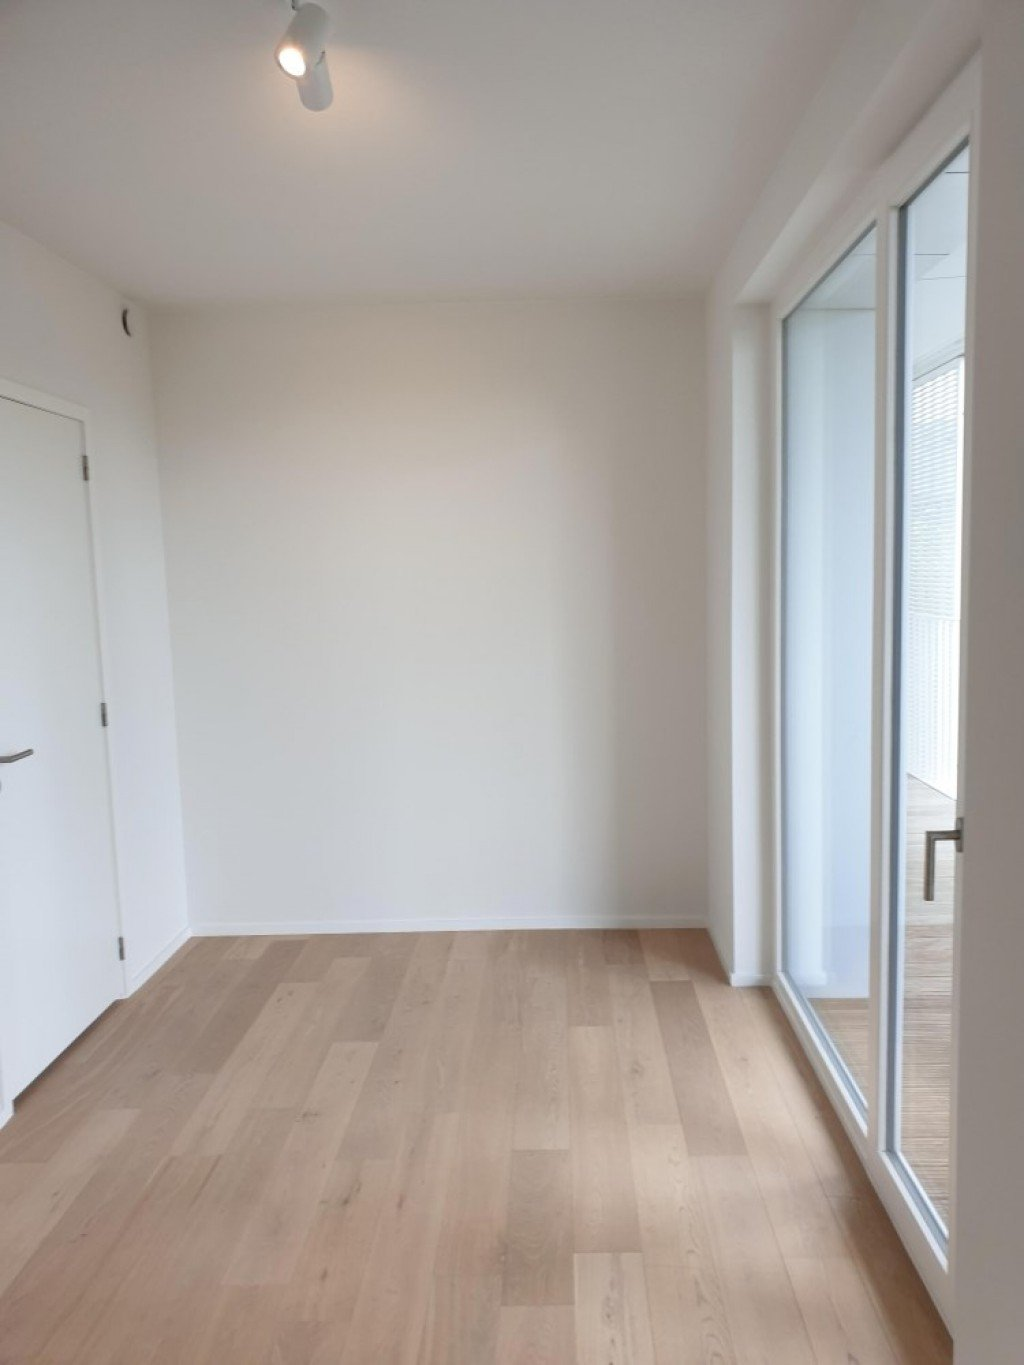 photo_NATO area in new building, very nice 2 bedroom + 1 office apartment with terrace